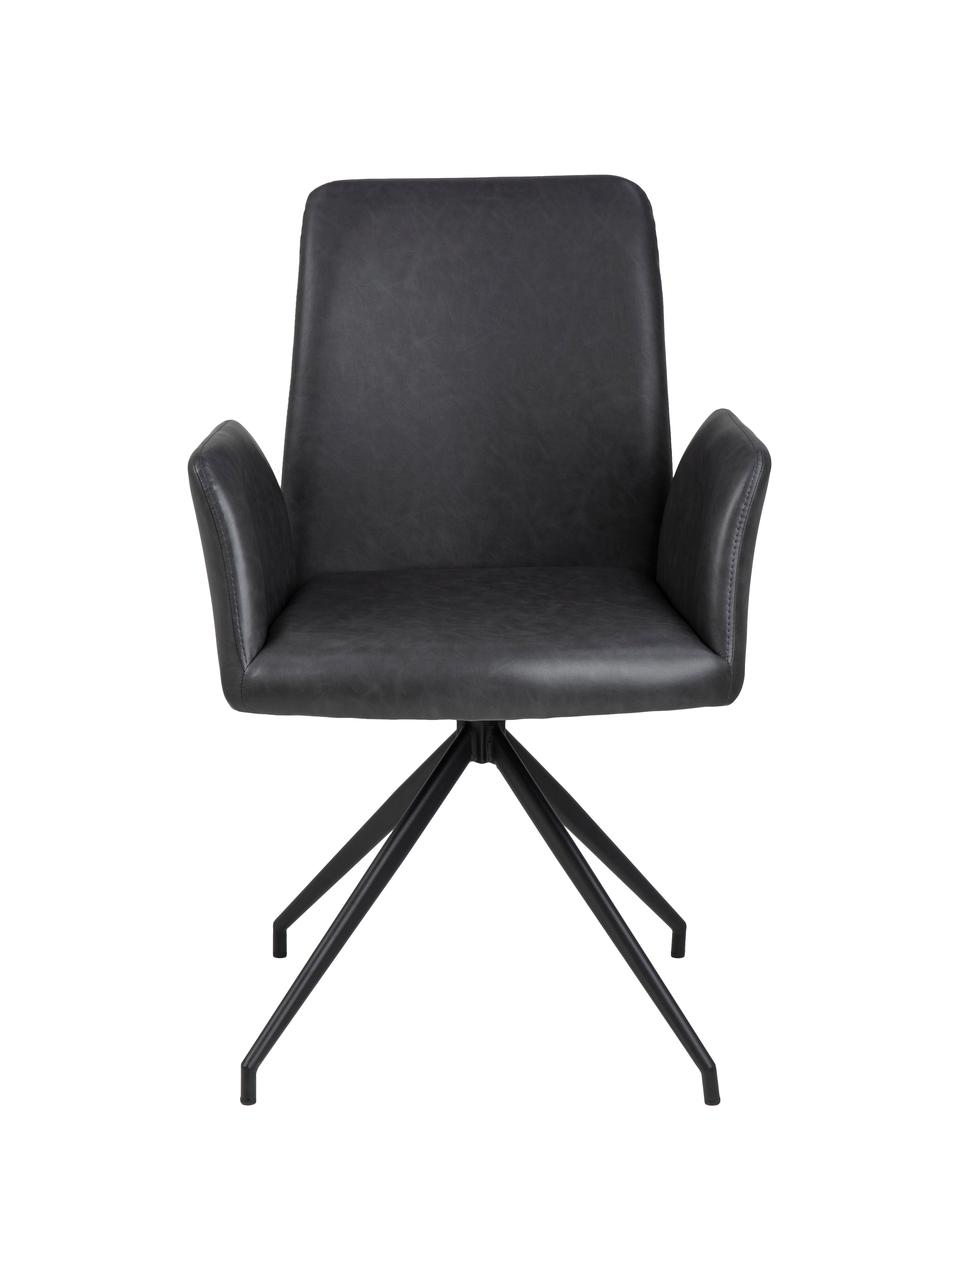 Chaise pivotante en cuir synthétique Naya, Cuir synthétique anthracite